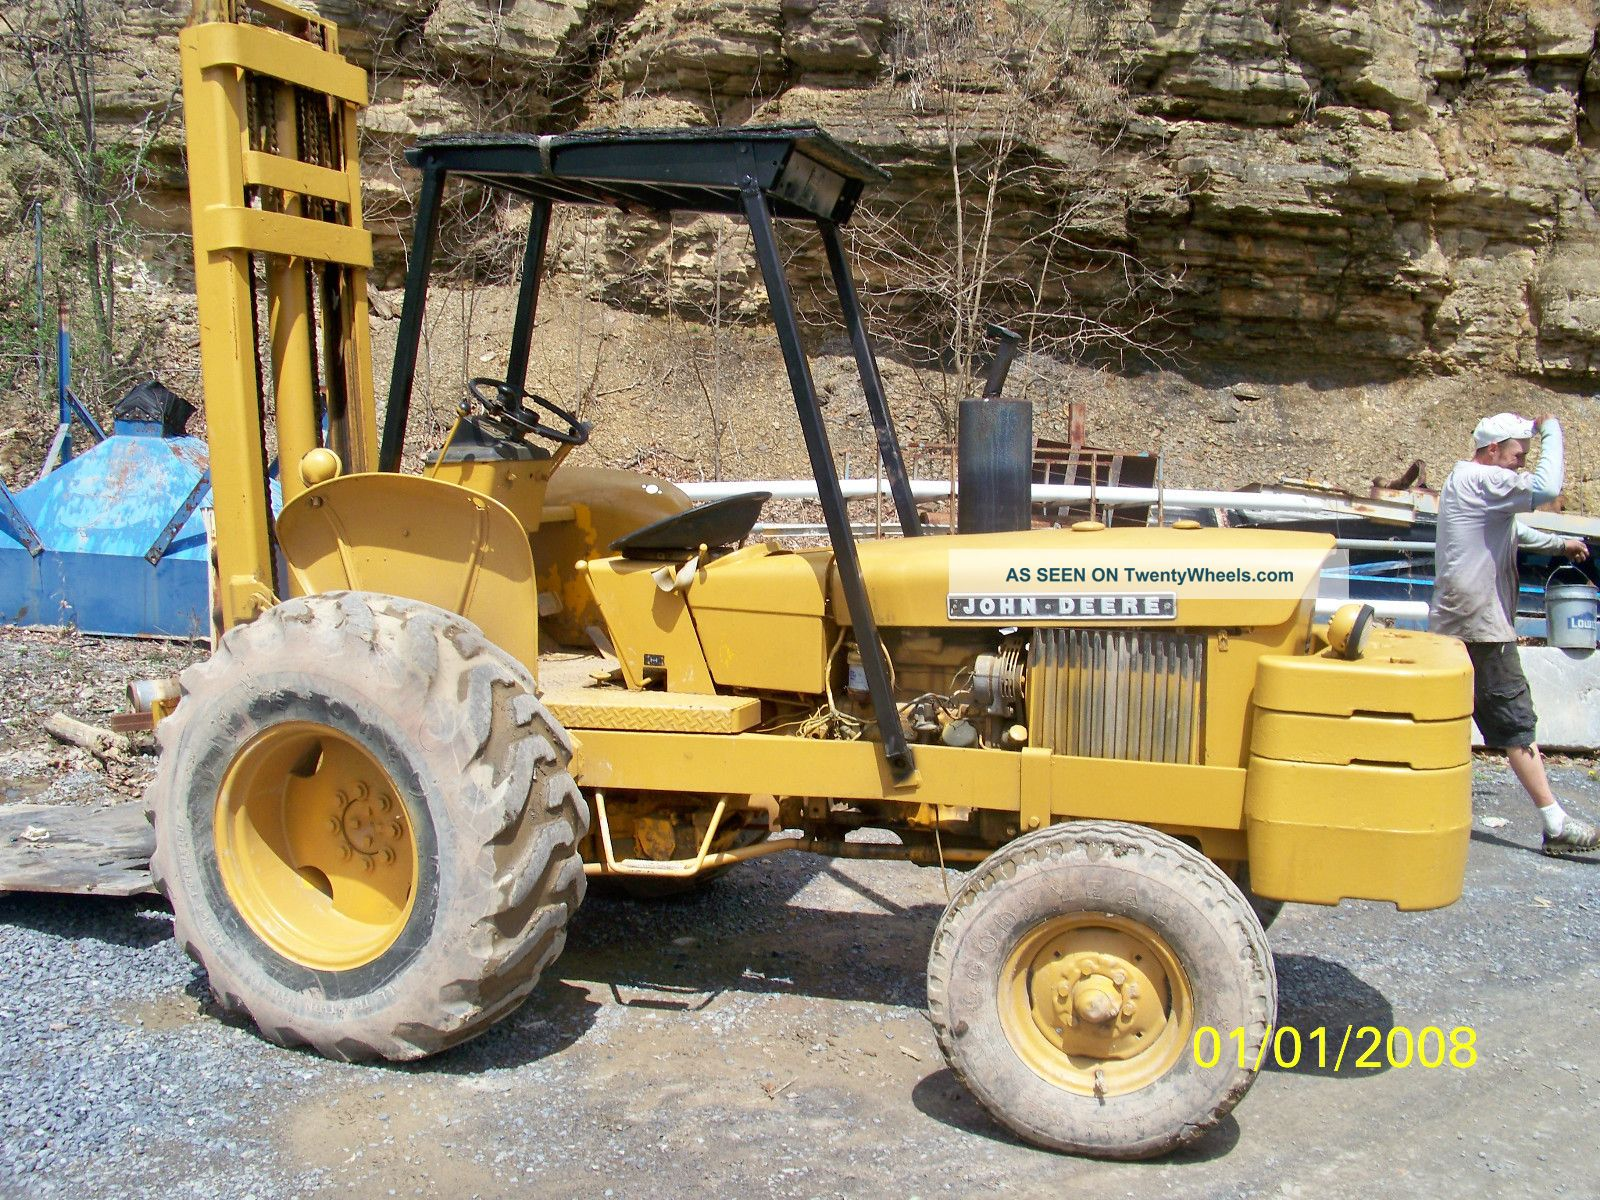 John Deere 380d Forklift Forklifts & Other Lifts photo